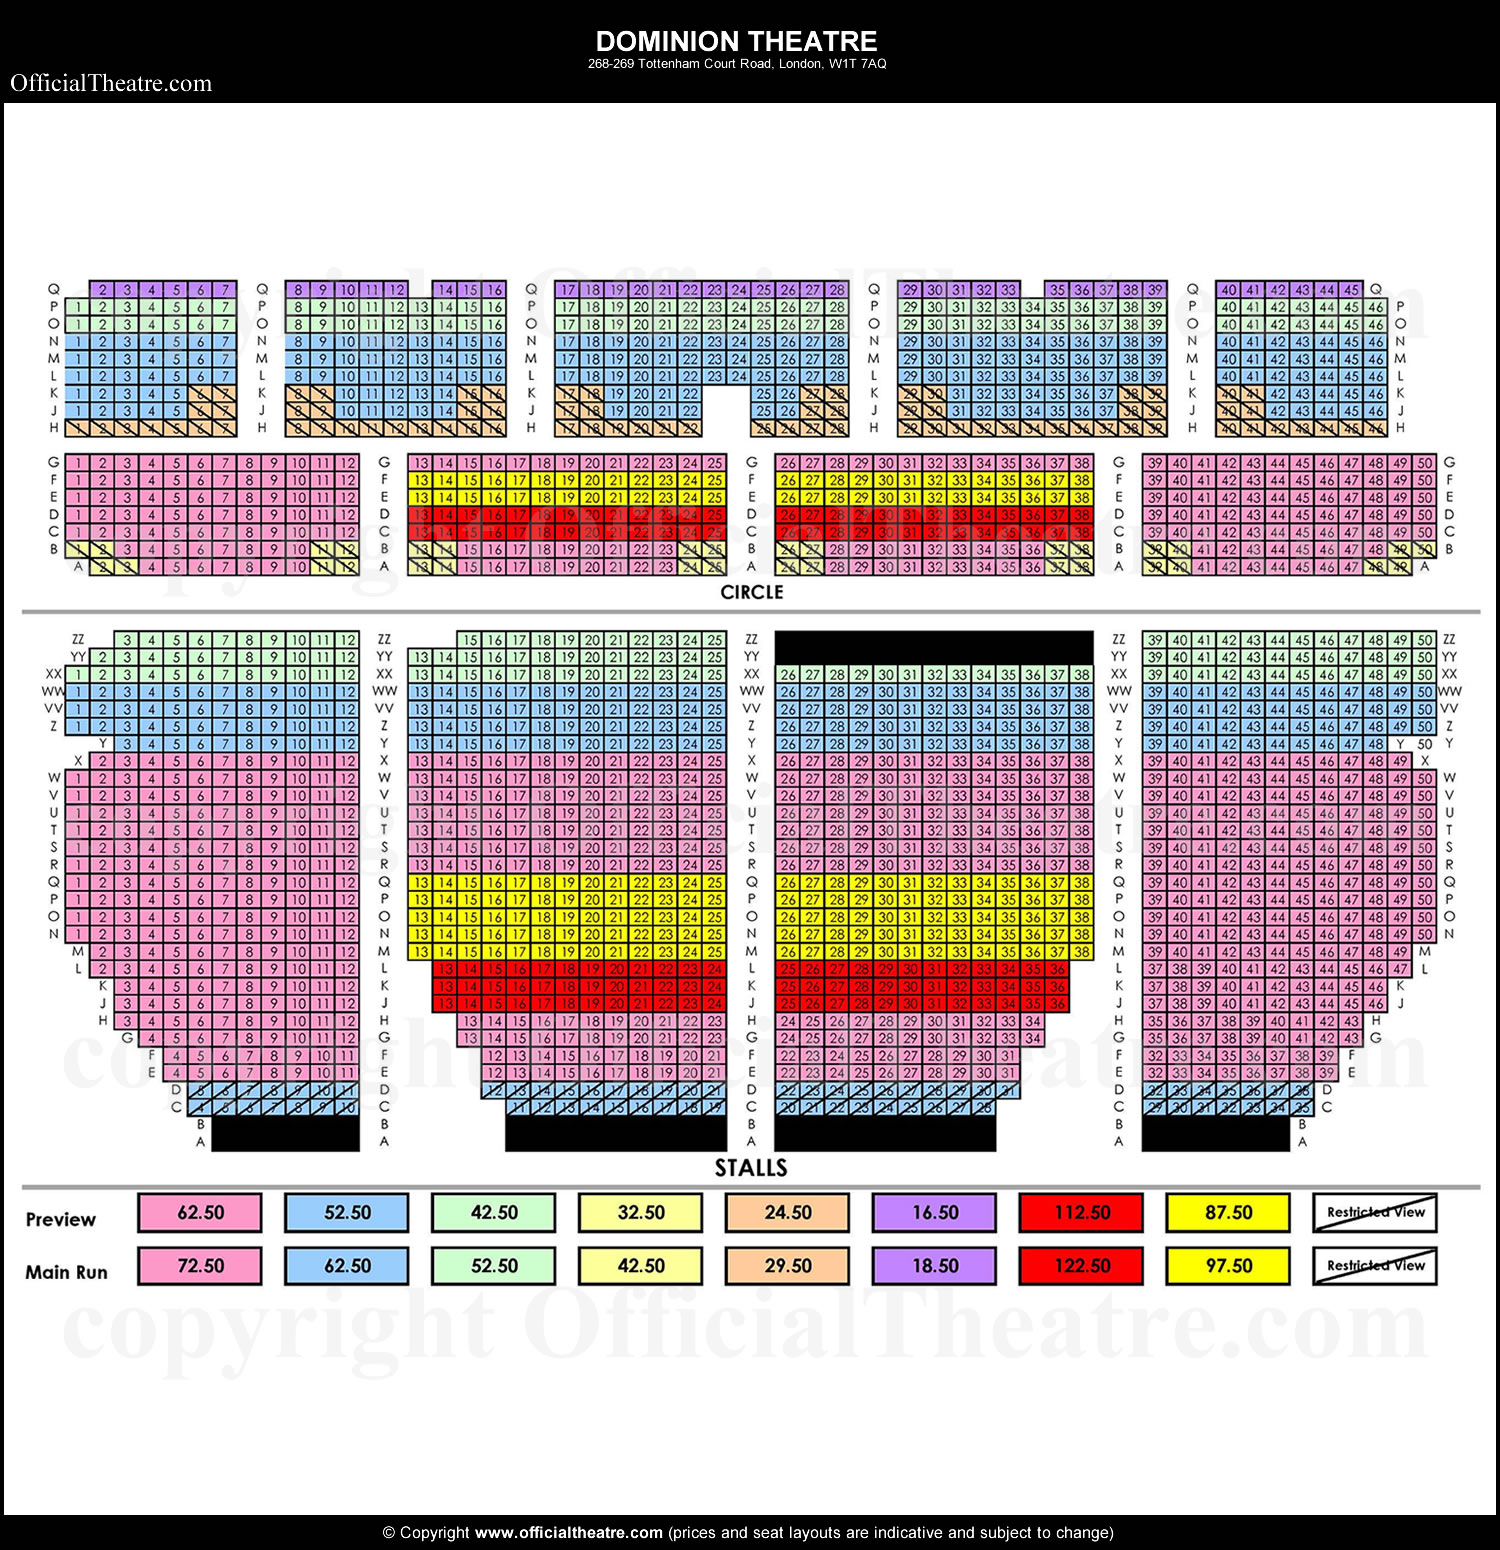 Dominion Theatre London Seat Map And Prices For Shen Yun